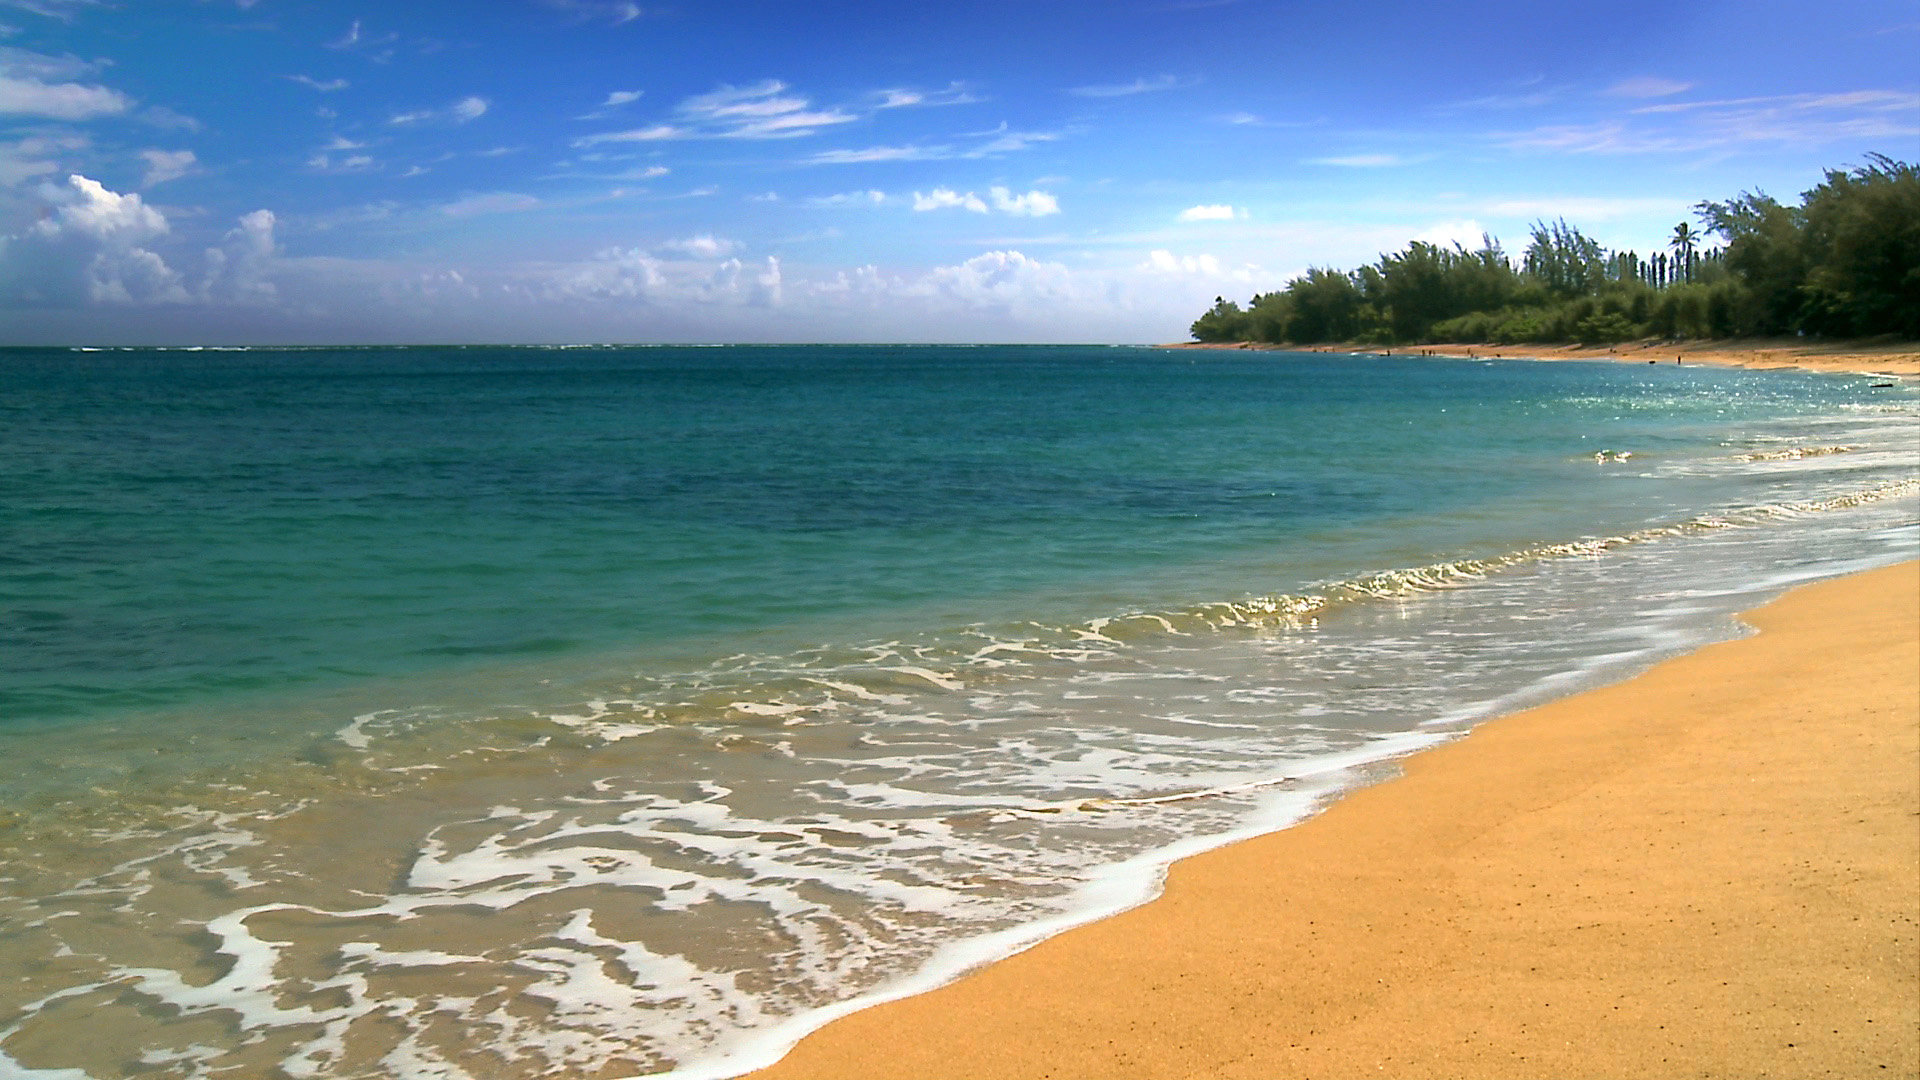 beach wallpapers hawaii beach hd wallpapers hawaii beach 1920x1080